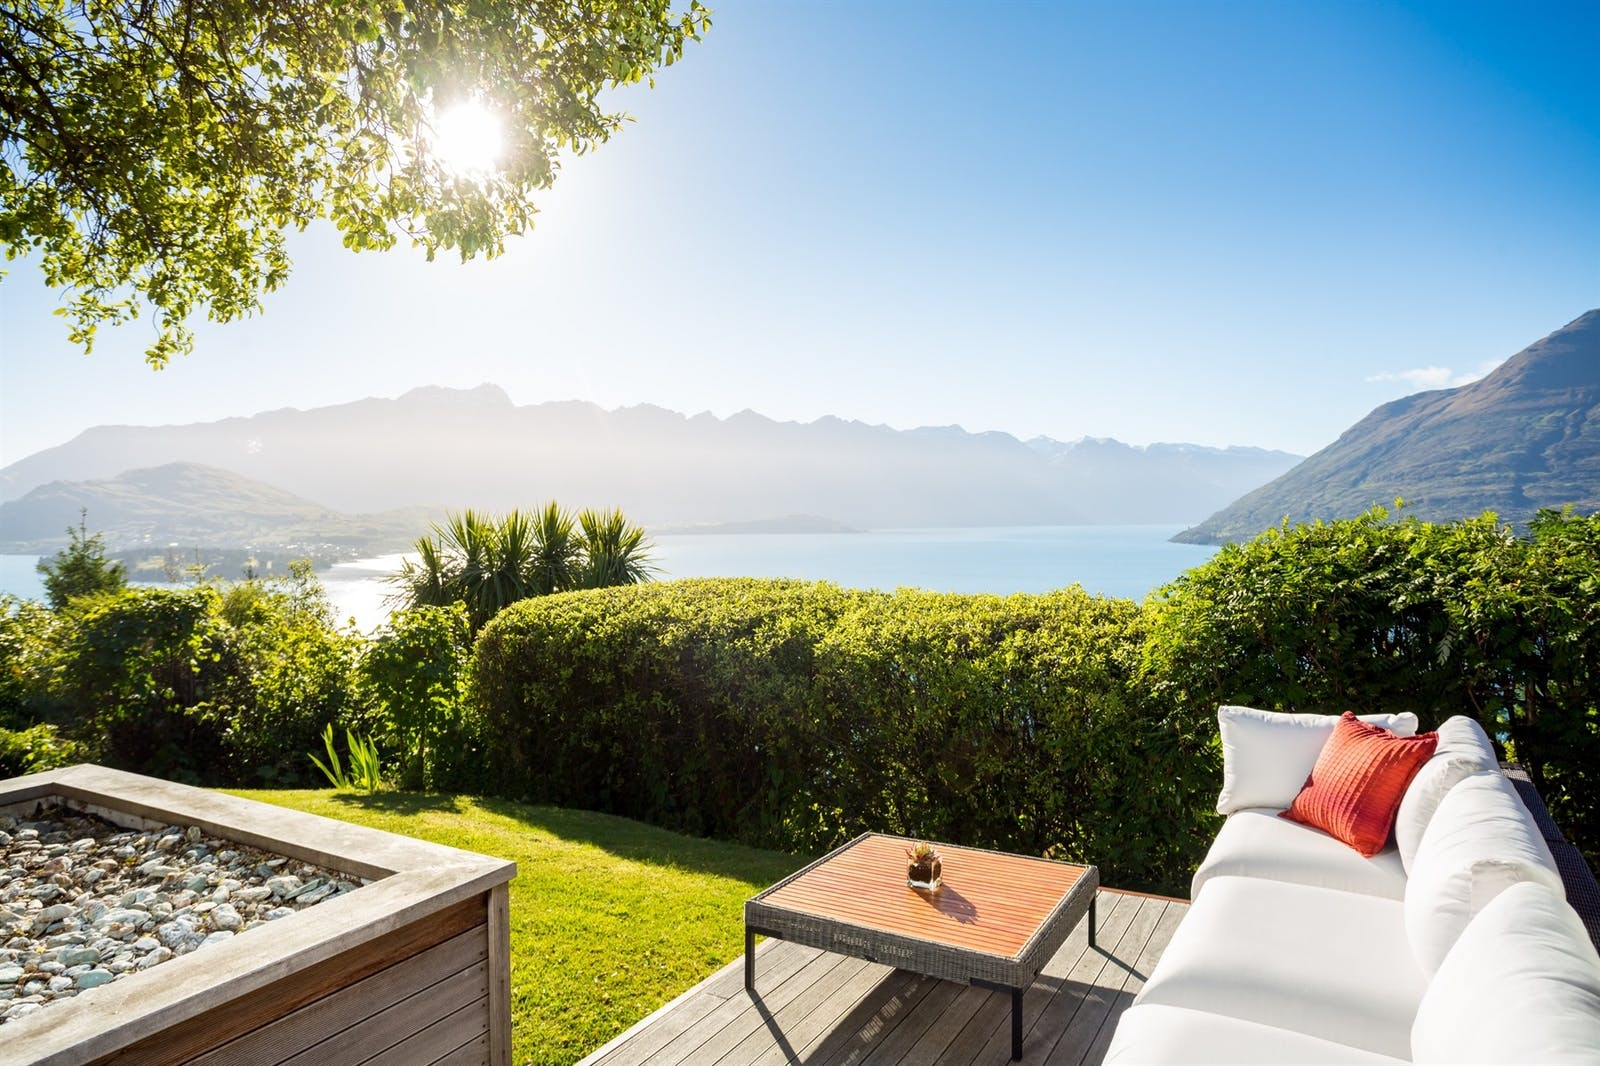 azur lodge outdoor seating, Queenstown, South Island, New Zealand